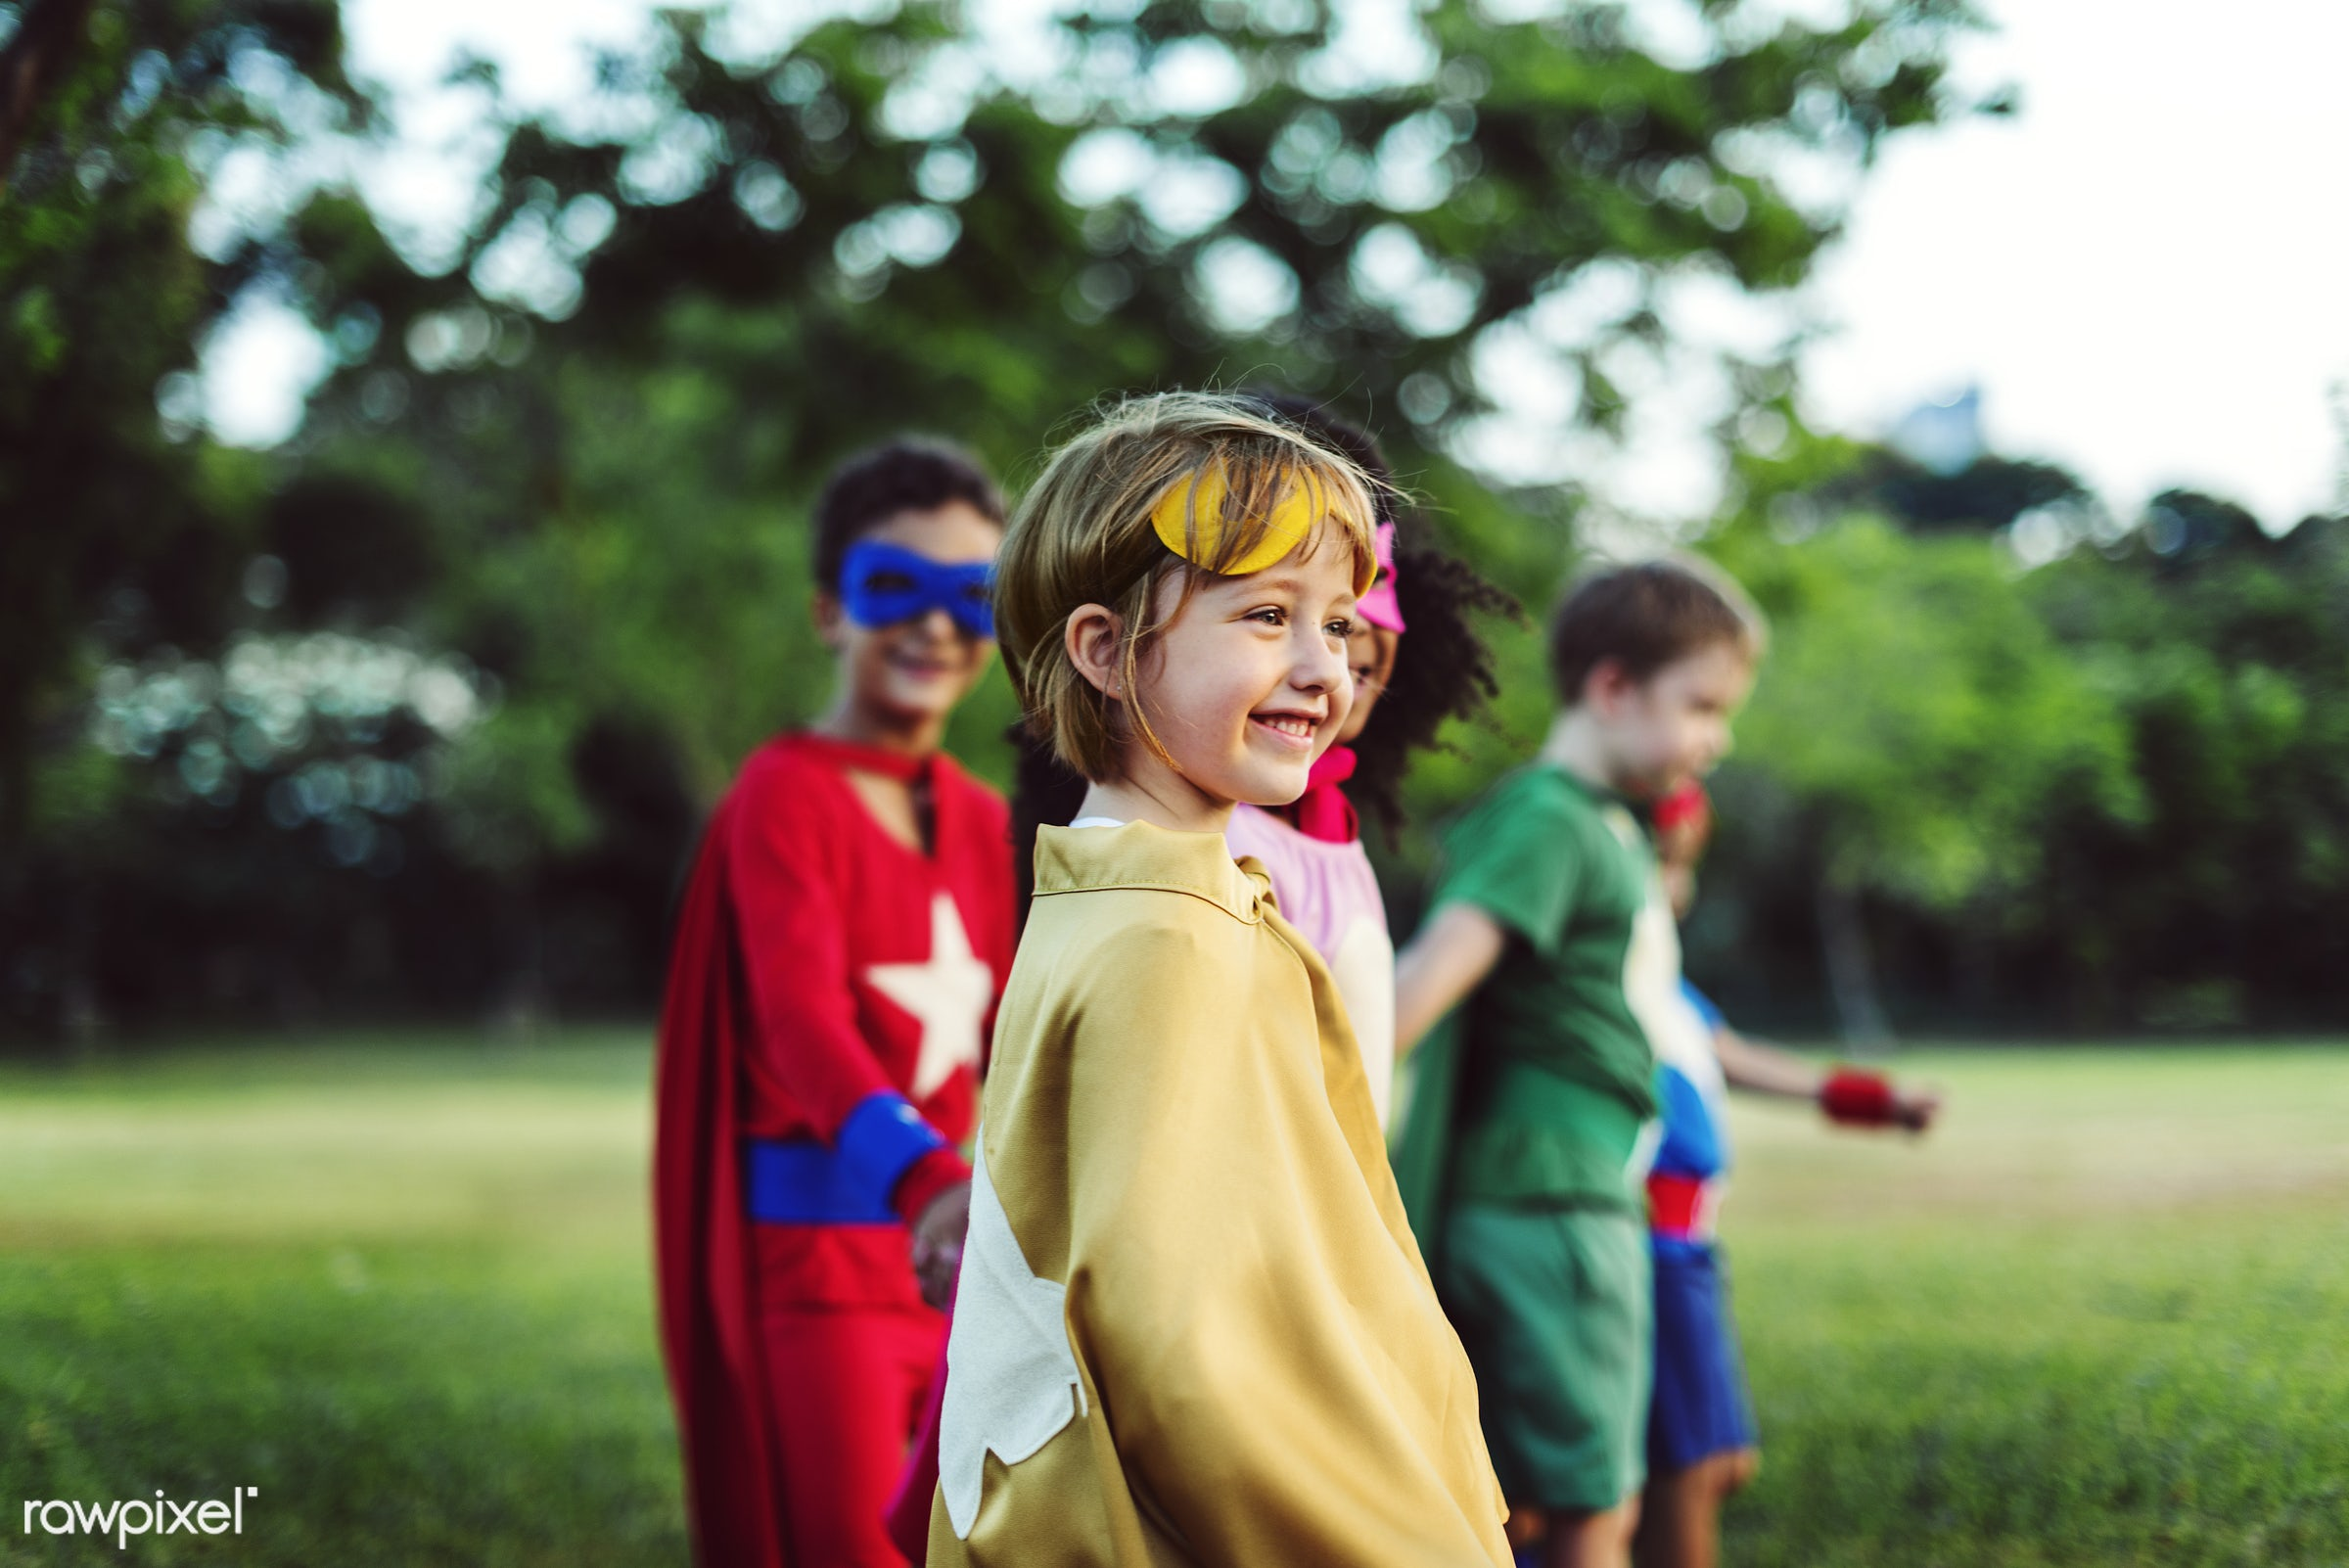 Superhero kids with superpowers - superhero, adorable, african descent, asian ethnicity, aspiration, boys, cape, cheerful,...